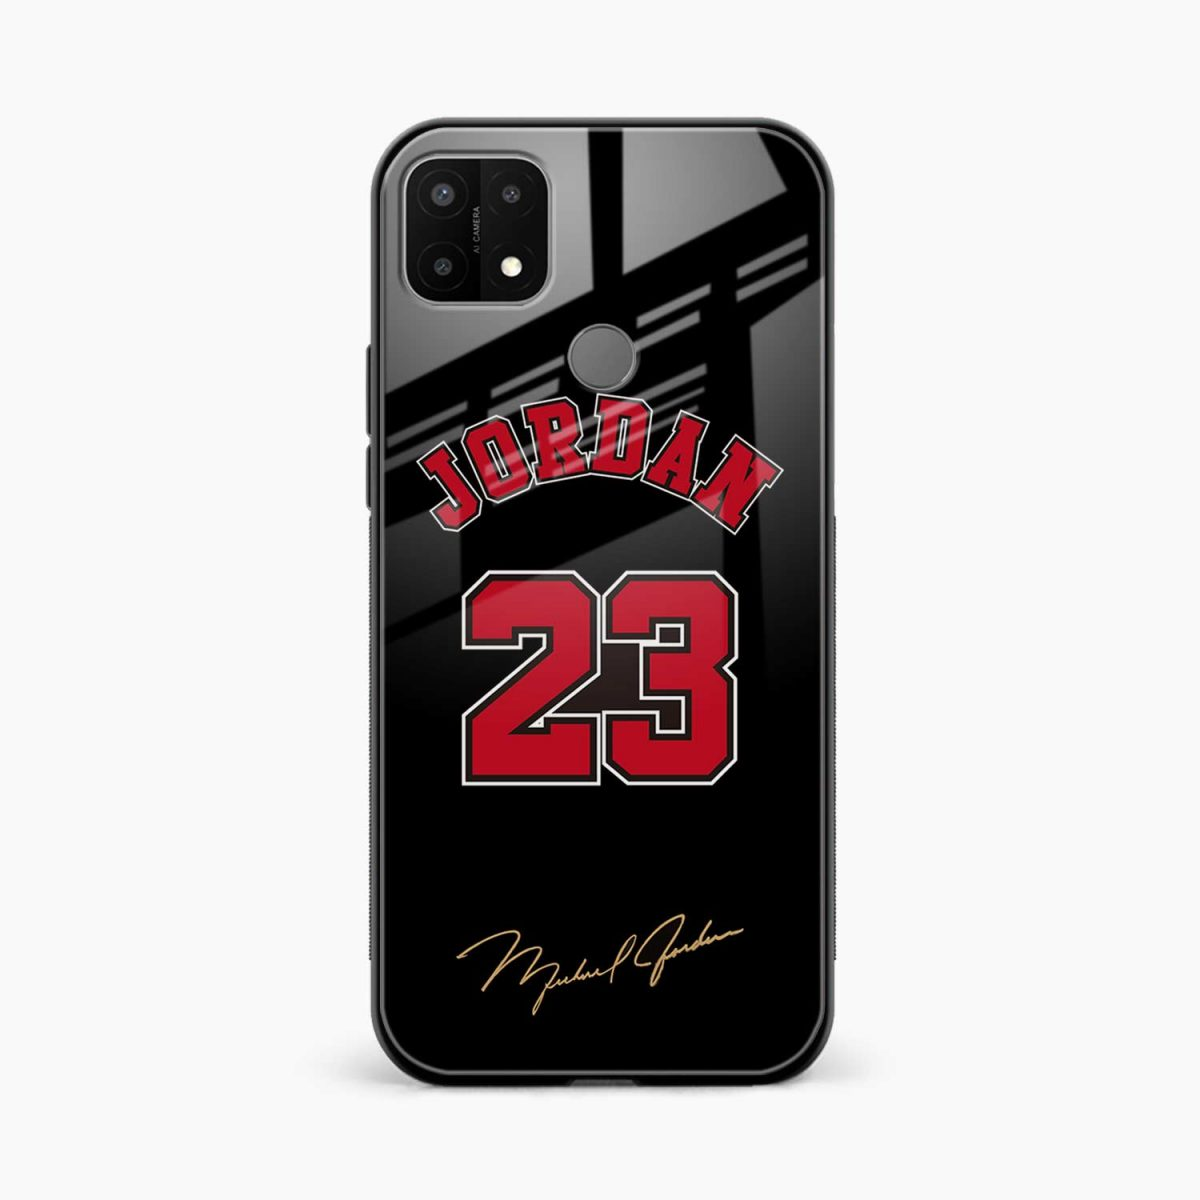 jordan 23 front view oppo a15 back cover